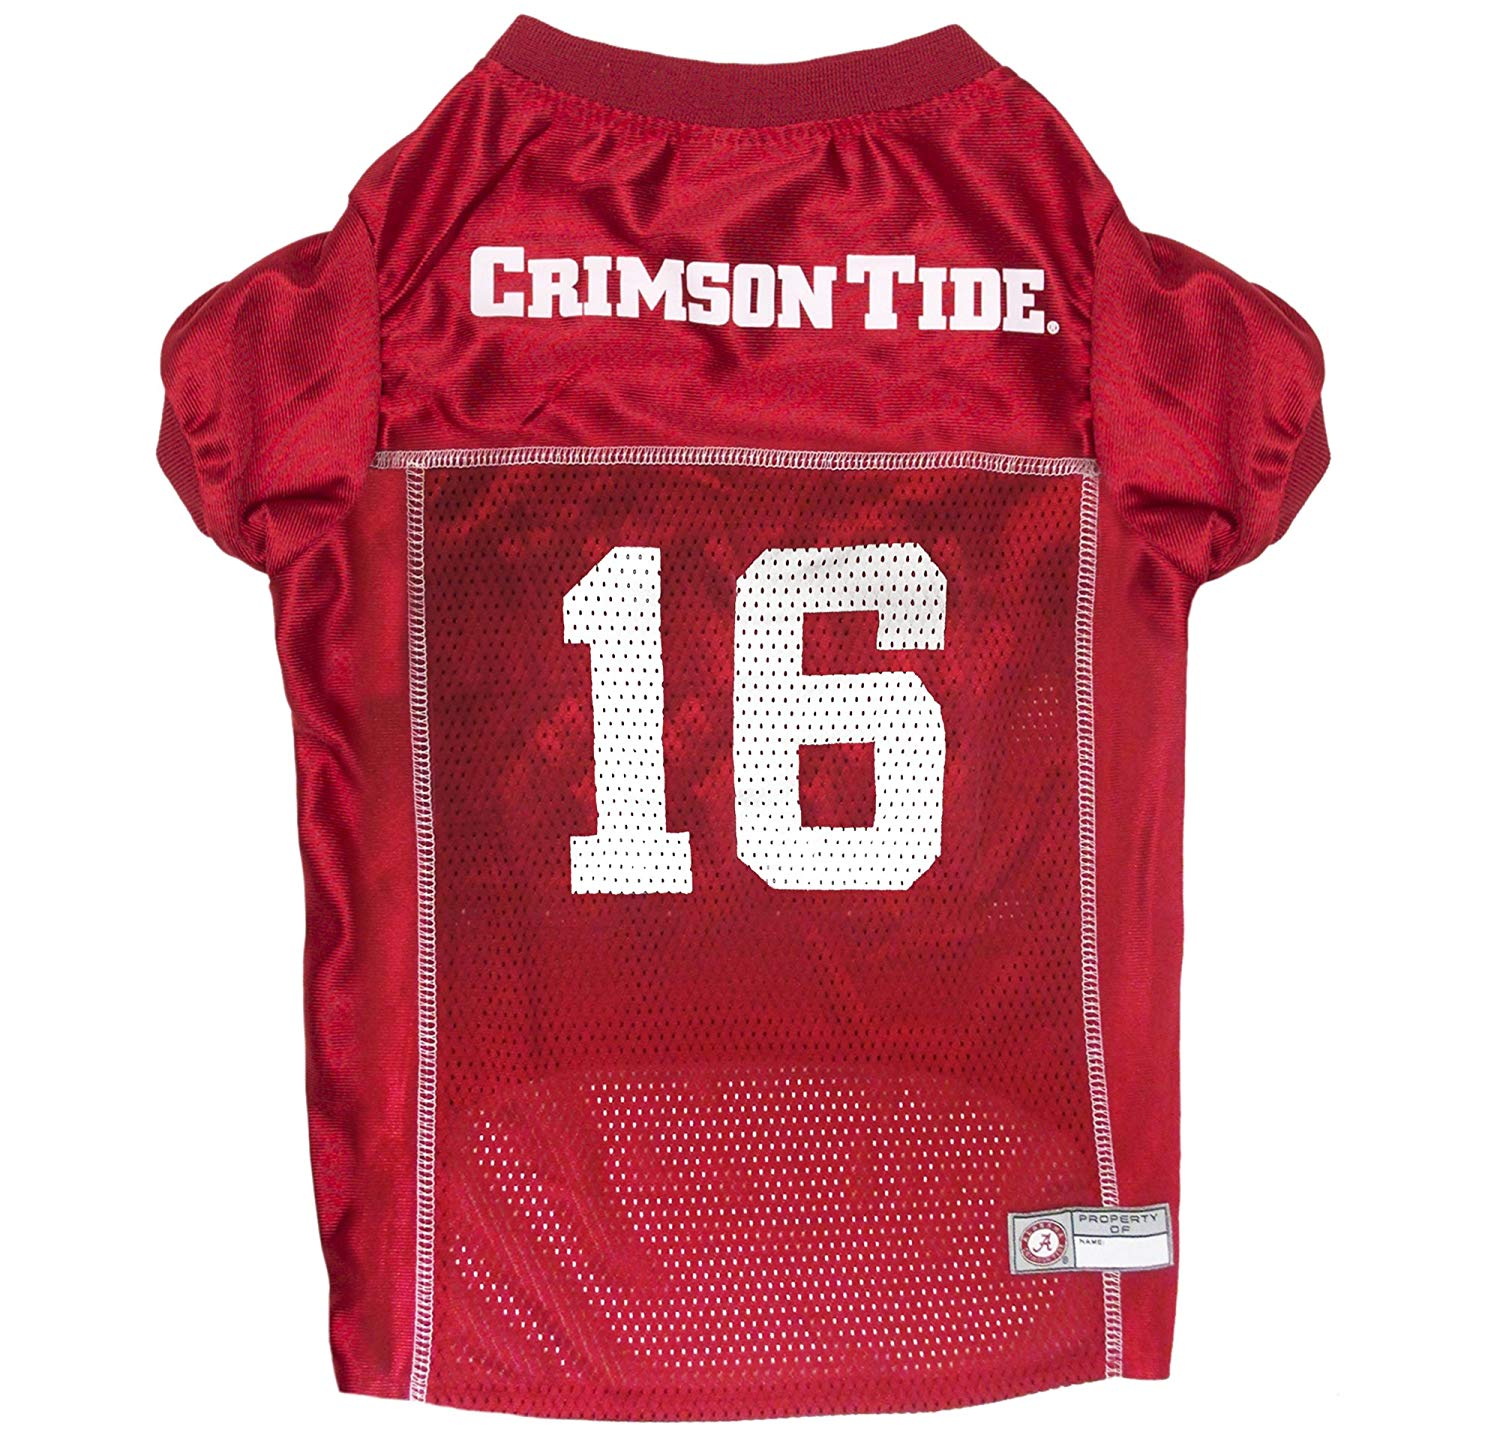 bef0c7994 Get Quotations · Pets First NCAA ALABAMA CRIMSON TIDE Pet Jersey. - College  Pet Jersey. - Football